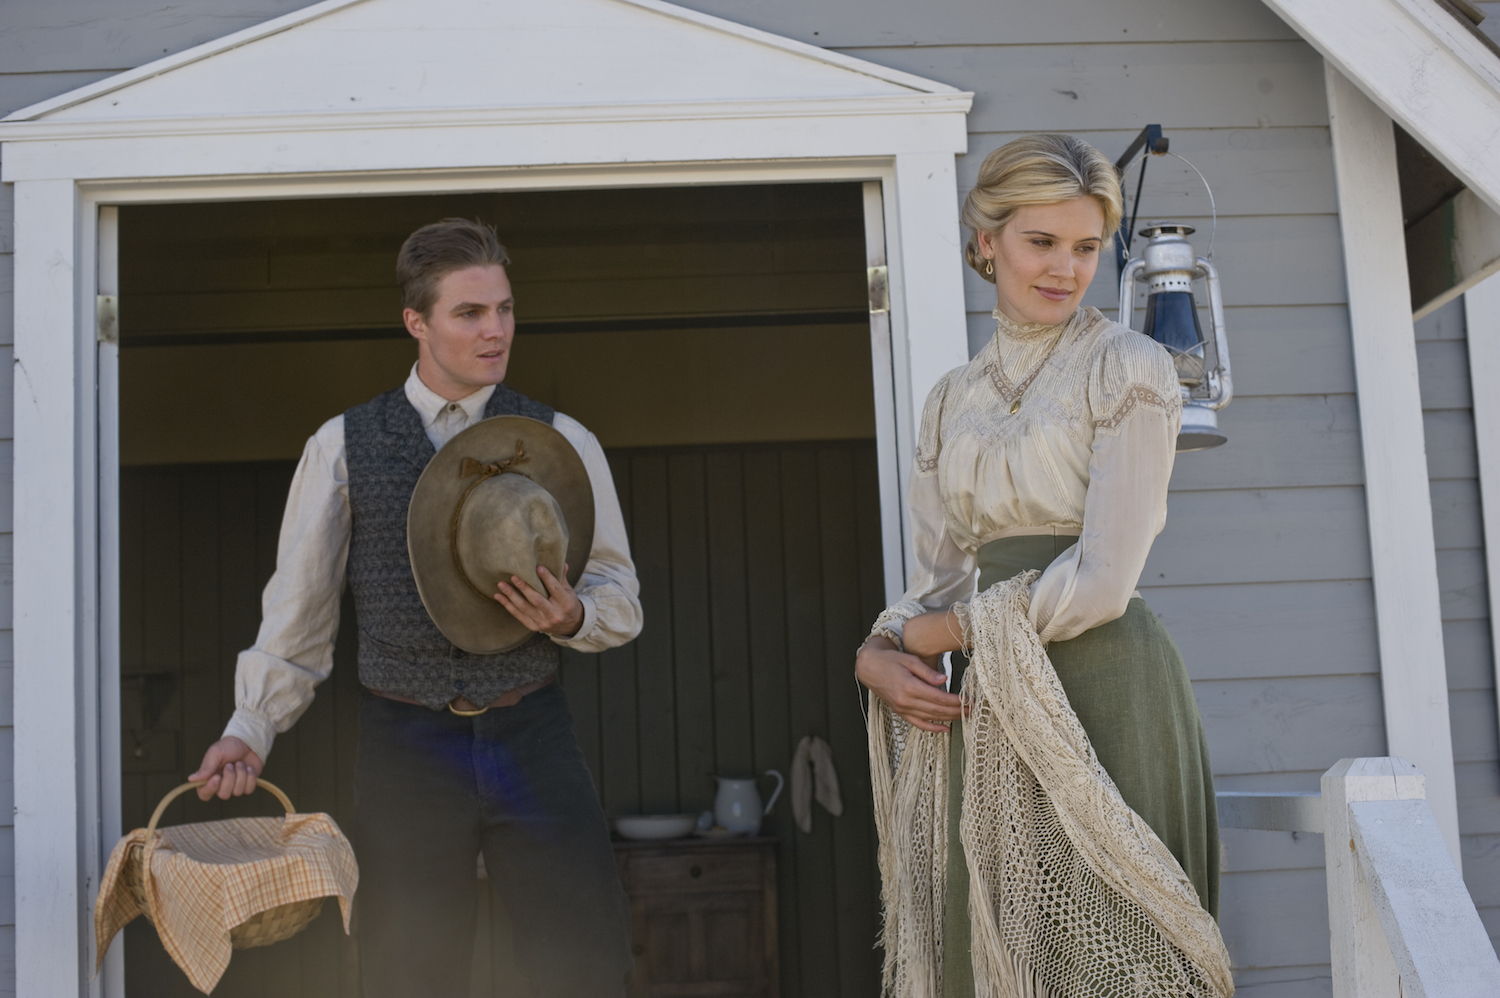 Stephen Amell and Maggie Grace in the When Calls the Heart movie